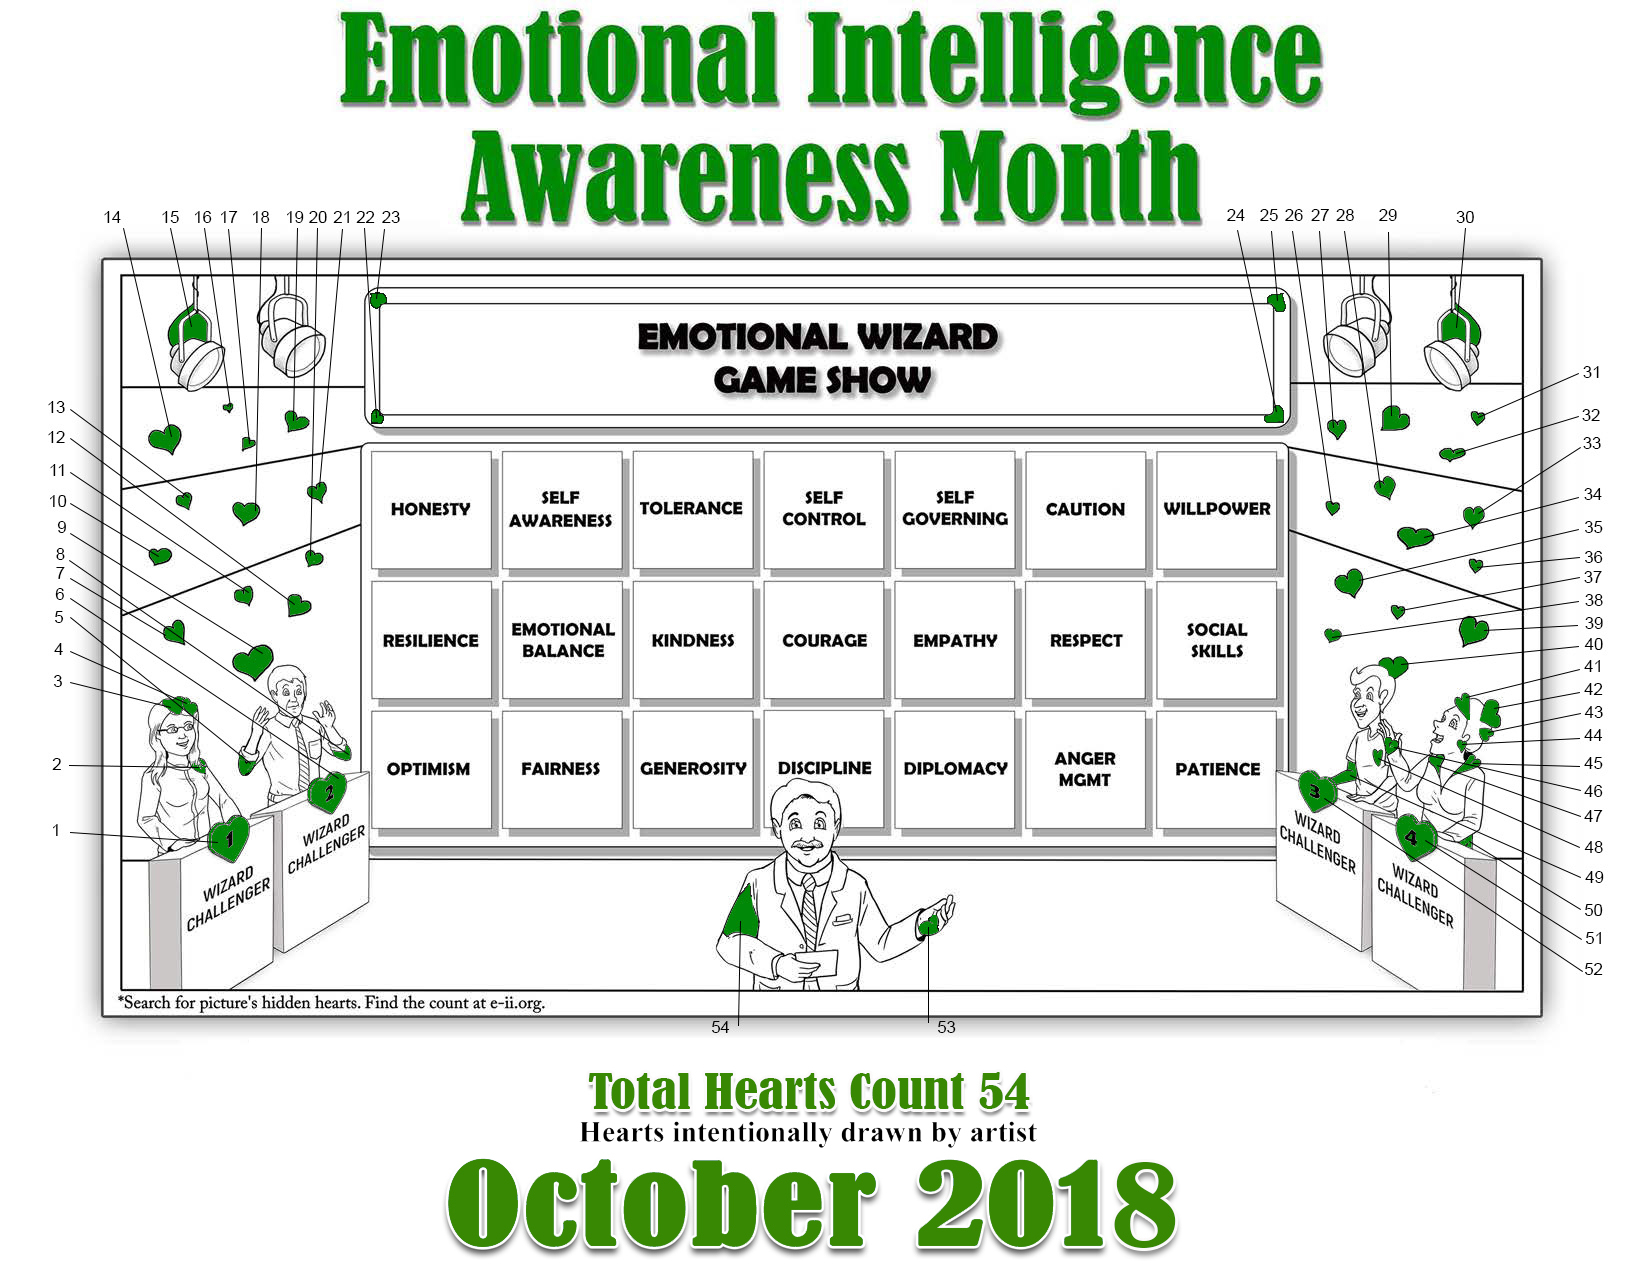 Emotional Intelligence Awareness Month